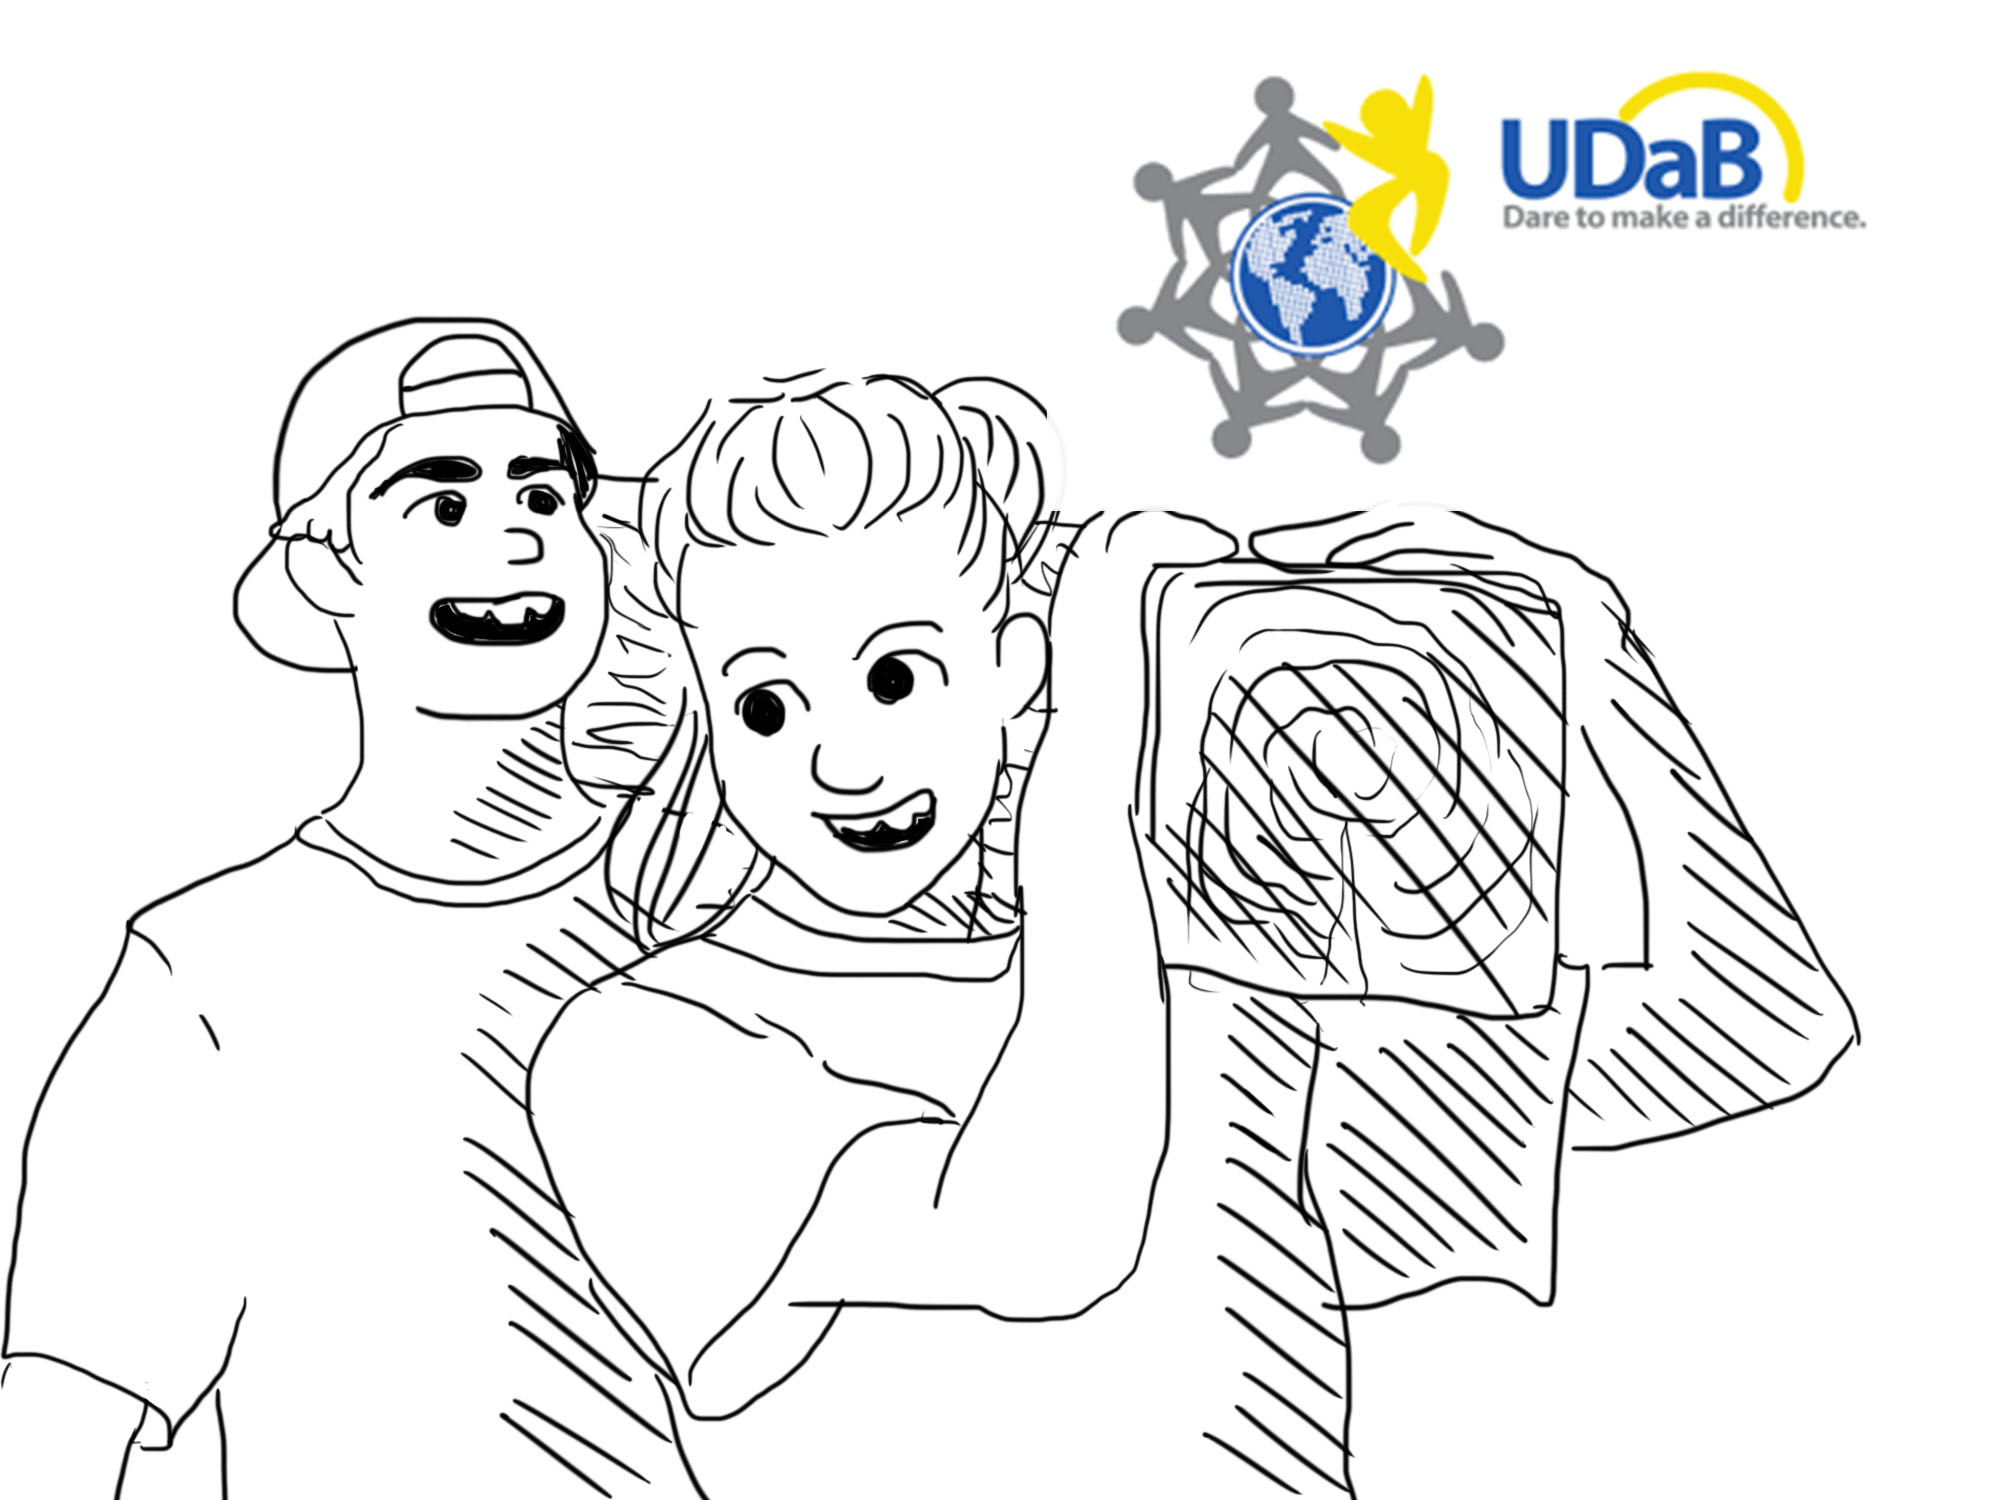 After UDaB's cancellation, disappointed students look for online service opportunities